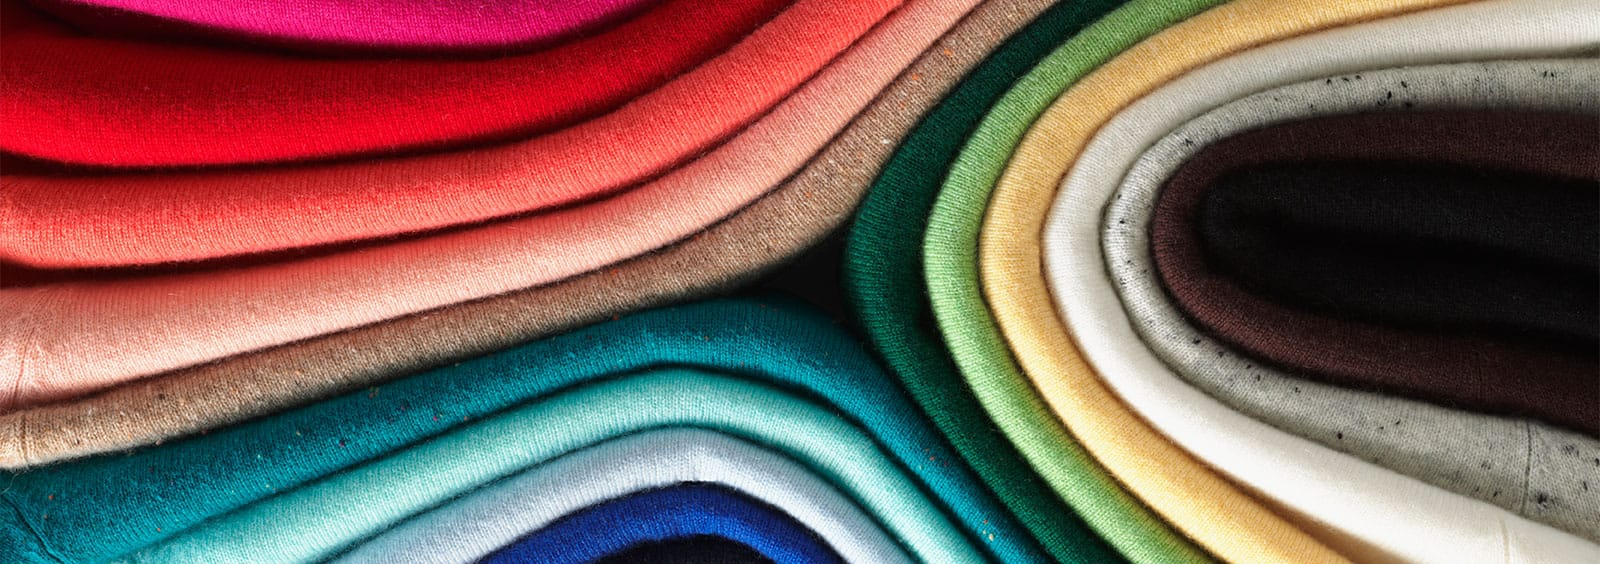 Is It Okay to Wear a Cashmere Sweater to an Interview?